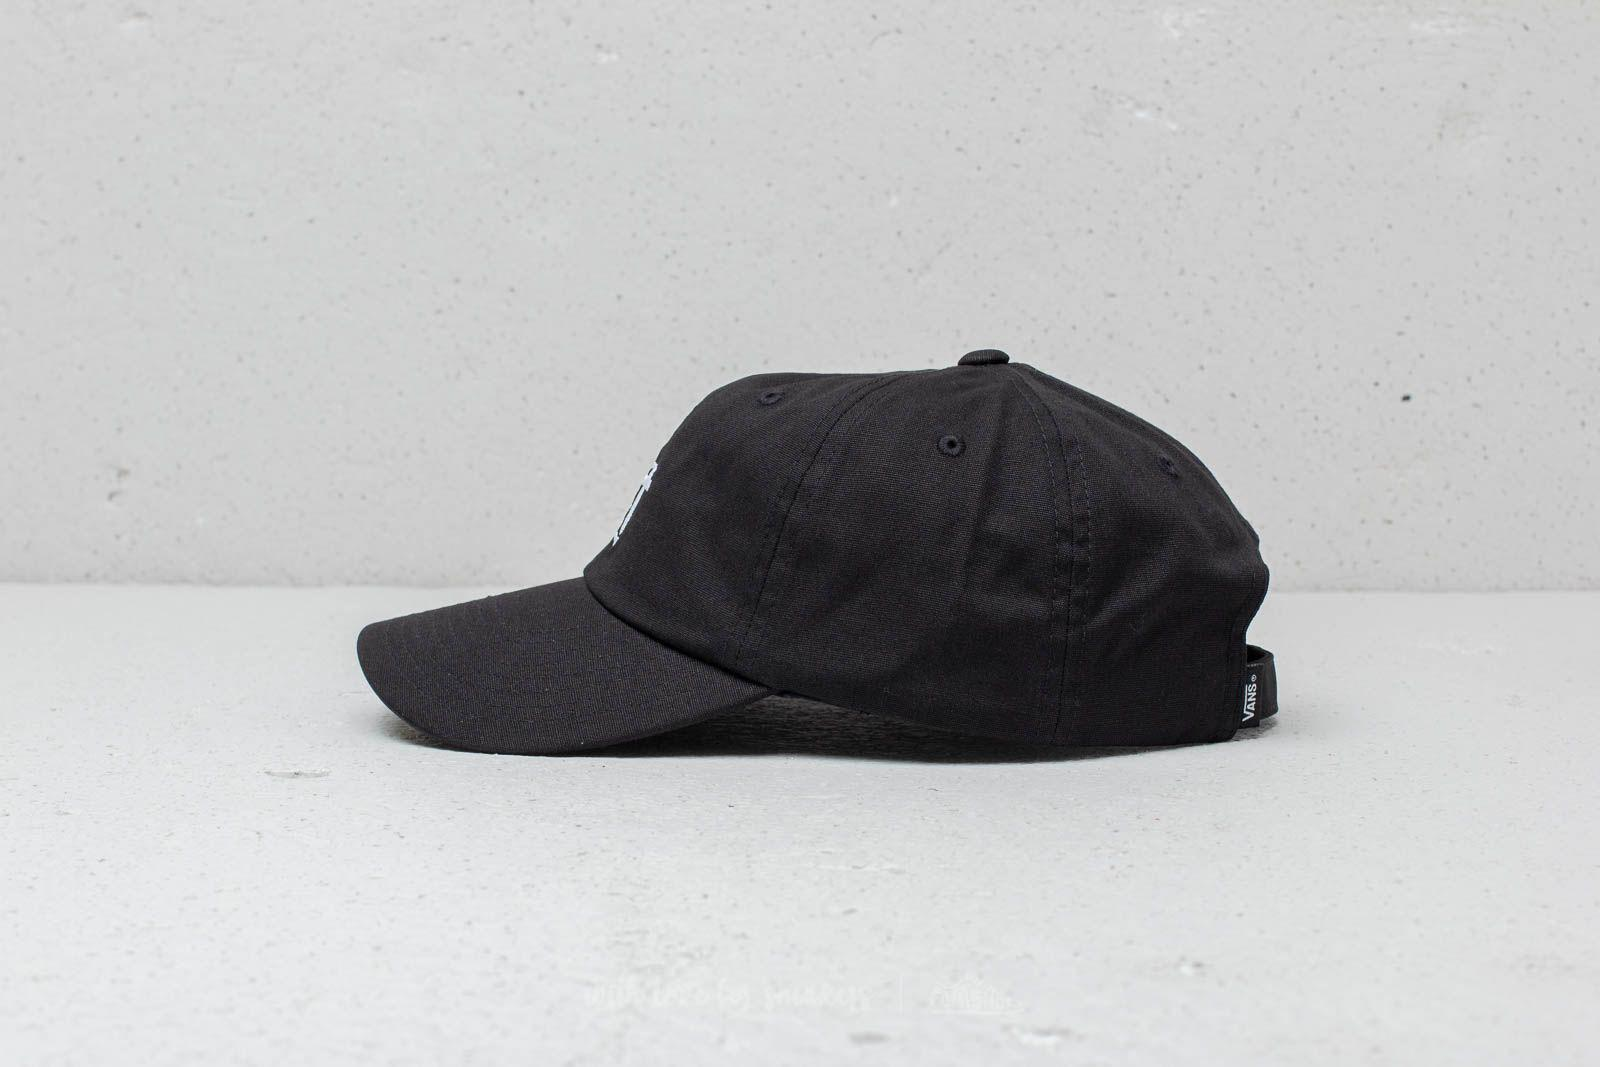 e3b038310a7 Lyst - Vans Anaheim Factory Bill Jockey Hat Black in Black for Men